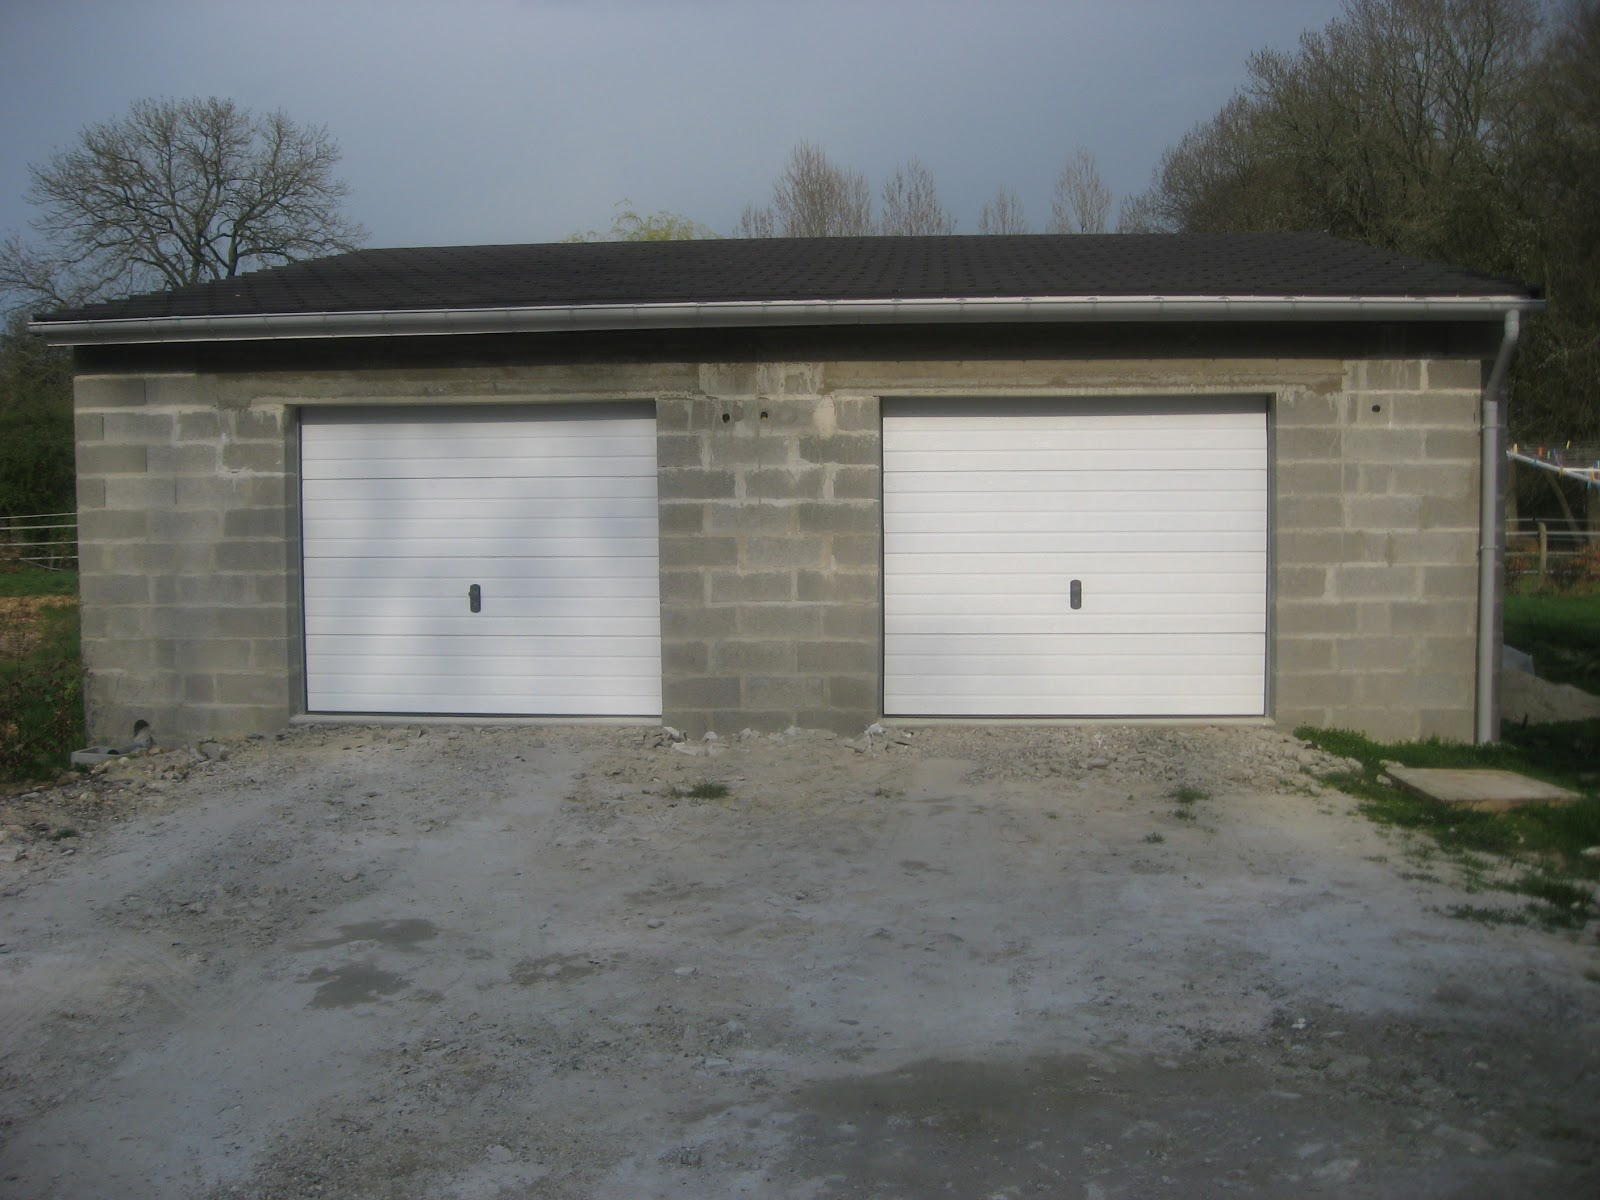 Maison de j r me et laetitia construction du garage double for Construction garage double